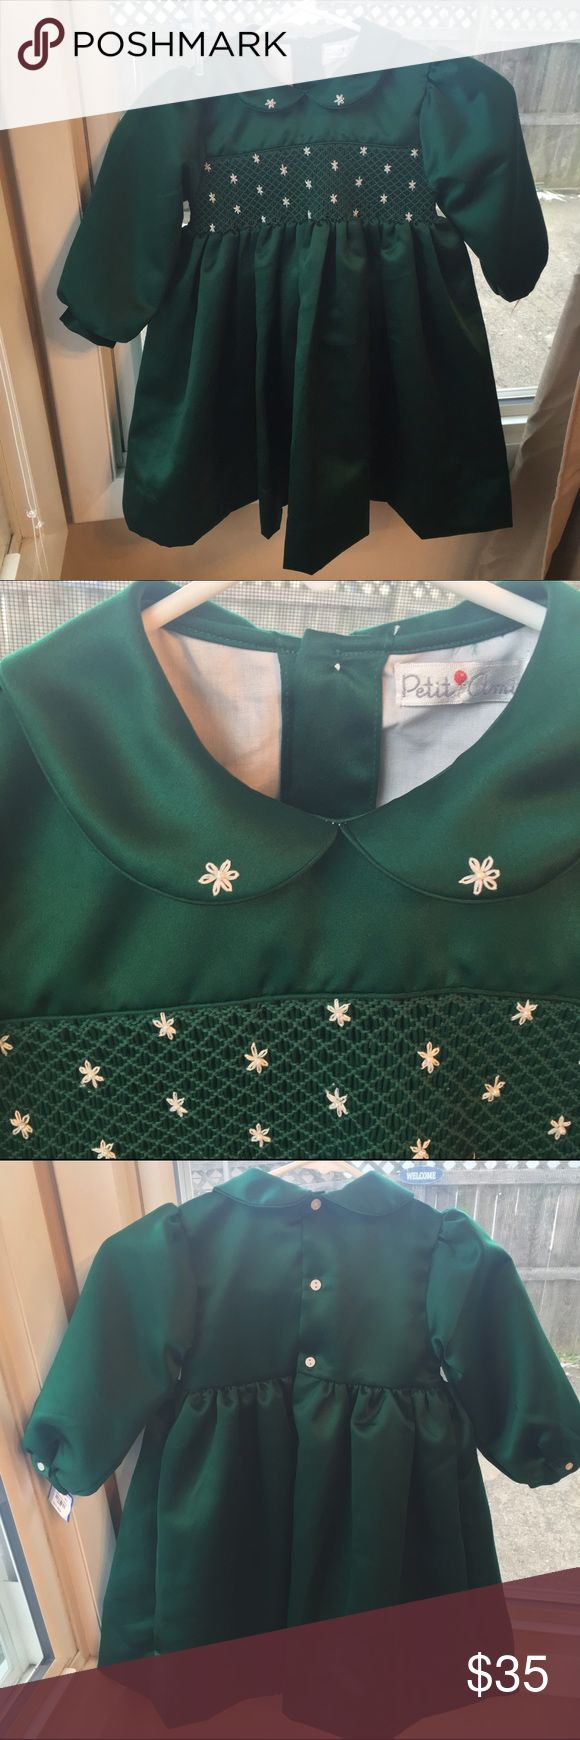 Petite Ami Green Holiday Dress Brand new, fully lined, beautiful toddler holiday dress! Features gorgeous snowflake embroidery and back buttons. Ships same day if ordered by 10:00 CST. Bundle 3 items and save 15% Petite Ami Dresses Formal